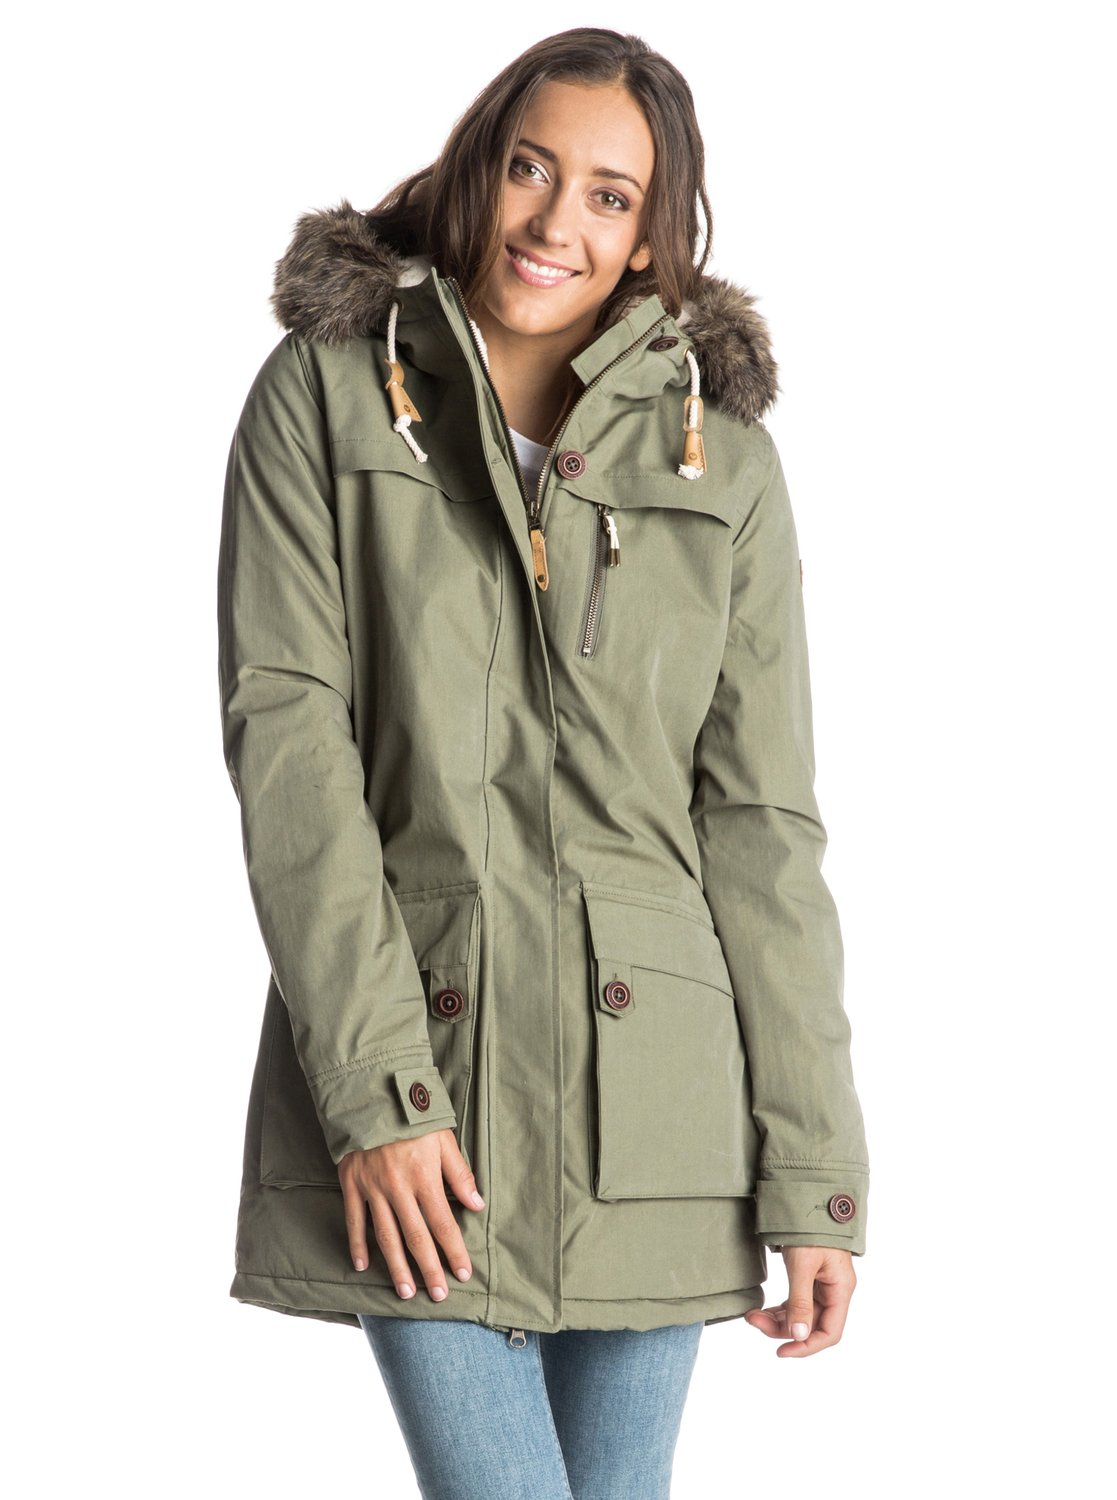 Shop the best selection of women's jackets at smileqbl.gq, where you'll find premium outdoor gear and clothing and experts to guide you through selection.